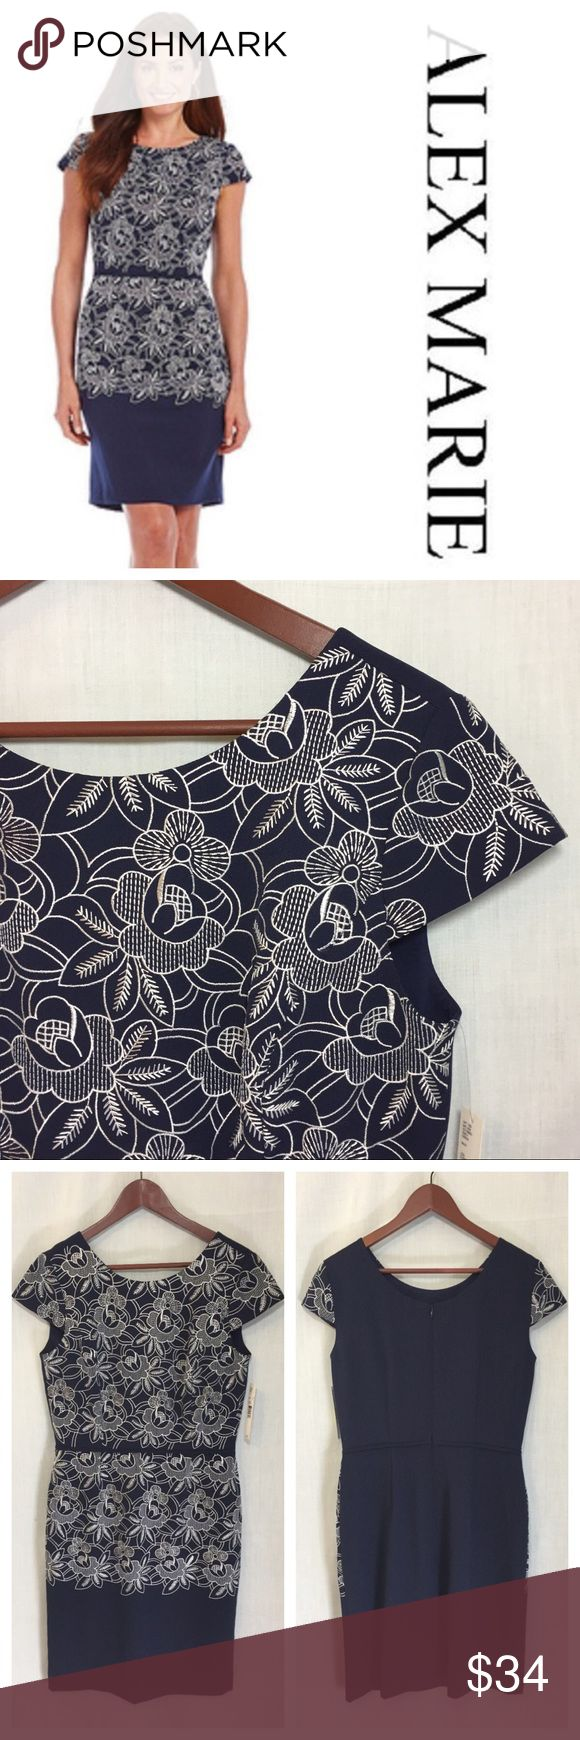 """Alex Marie Embroidered Floral Emily Crepe Dress Alex Marie Embroidered Floral Emily Crepe Dress NWT Navy Blue  • Sz 8 • 95% polyester 5% spandex shell • Fully lined • Back invisible zipper with hook and eye closure • Cap sleeves • Navy blue background with white floral flower leave embroidery • Defined waist (15.5"""" Measured flat) • 19.5"""" bust (measured flat) • 16"""" shoulders to waist • 38"""" total length • Dillard's • $139 Alex Marie Dresses"""